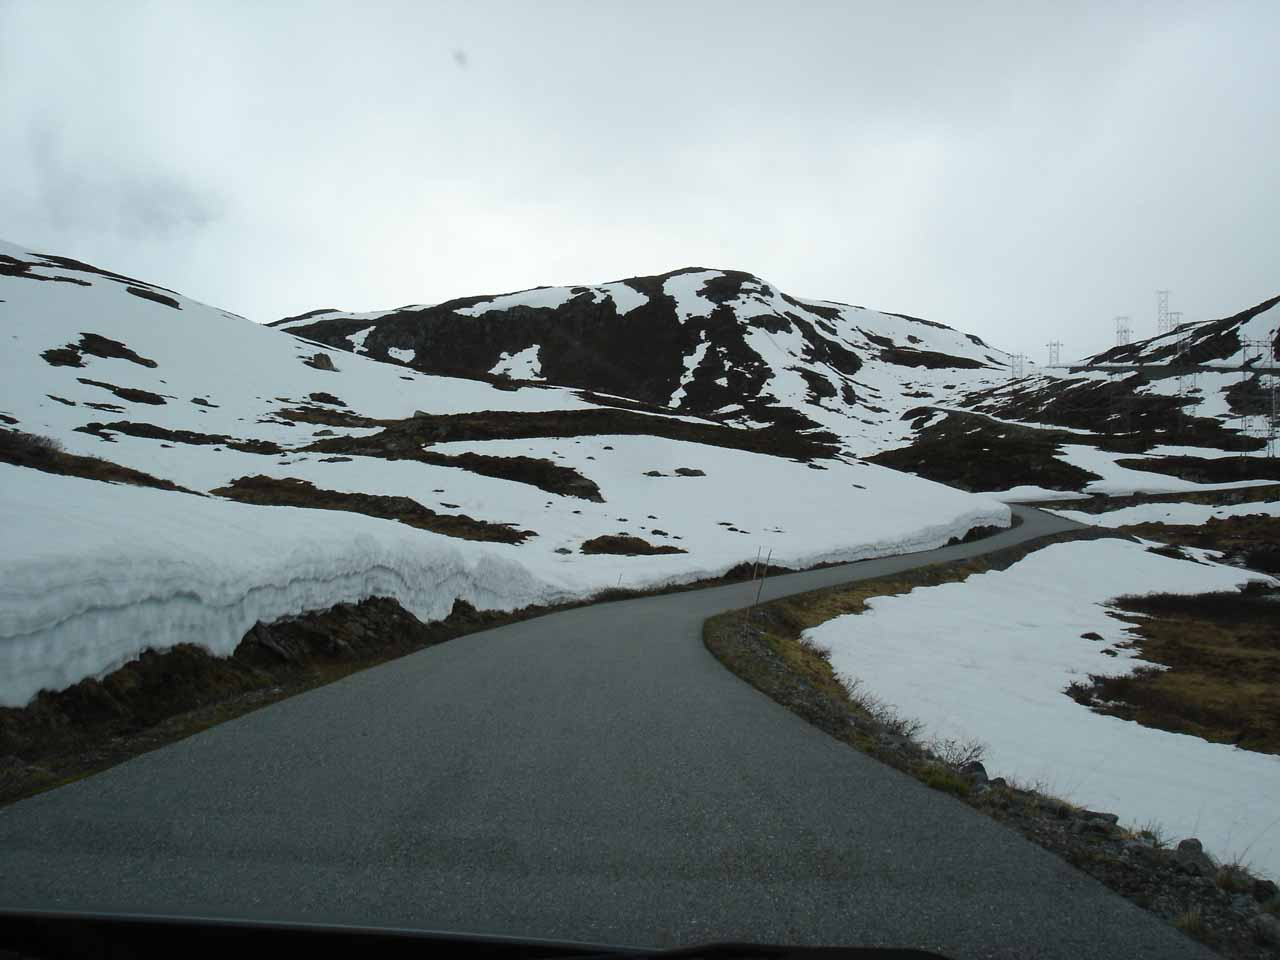 Now we were beyond the valley portion of Fardalen and into the mountain pass where there was still some snow